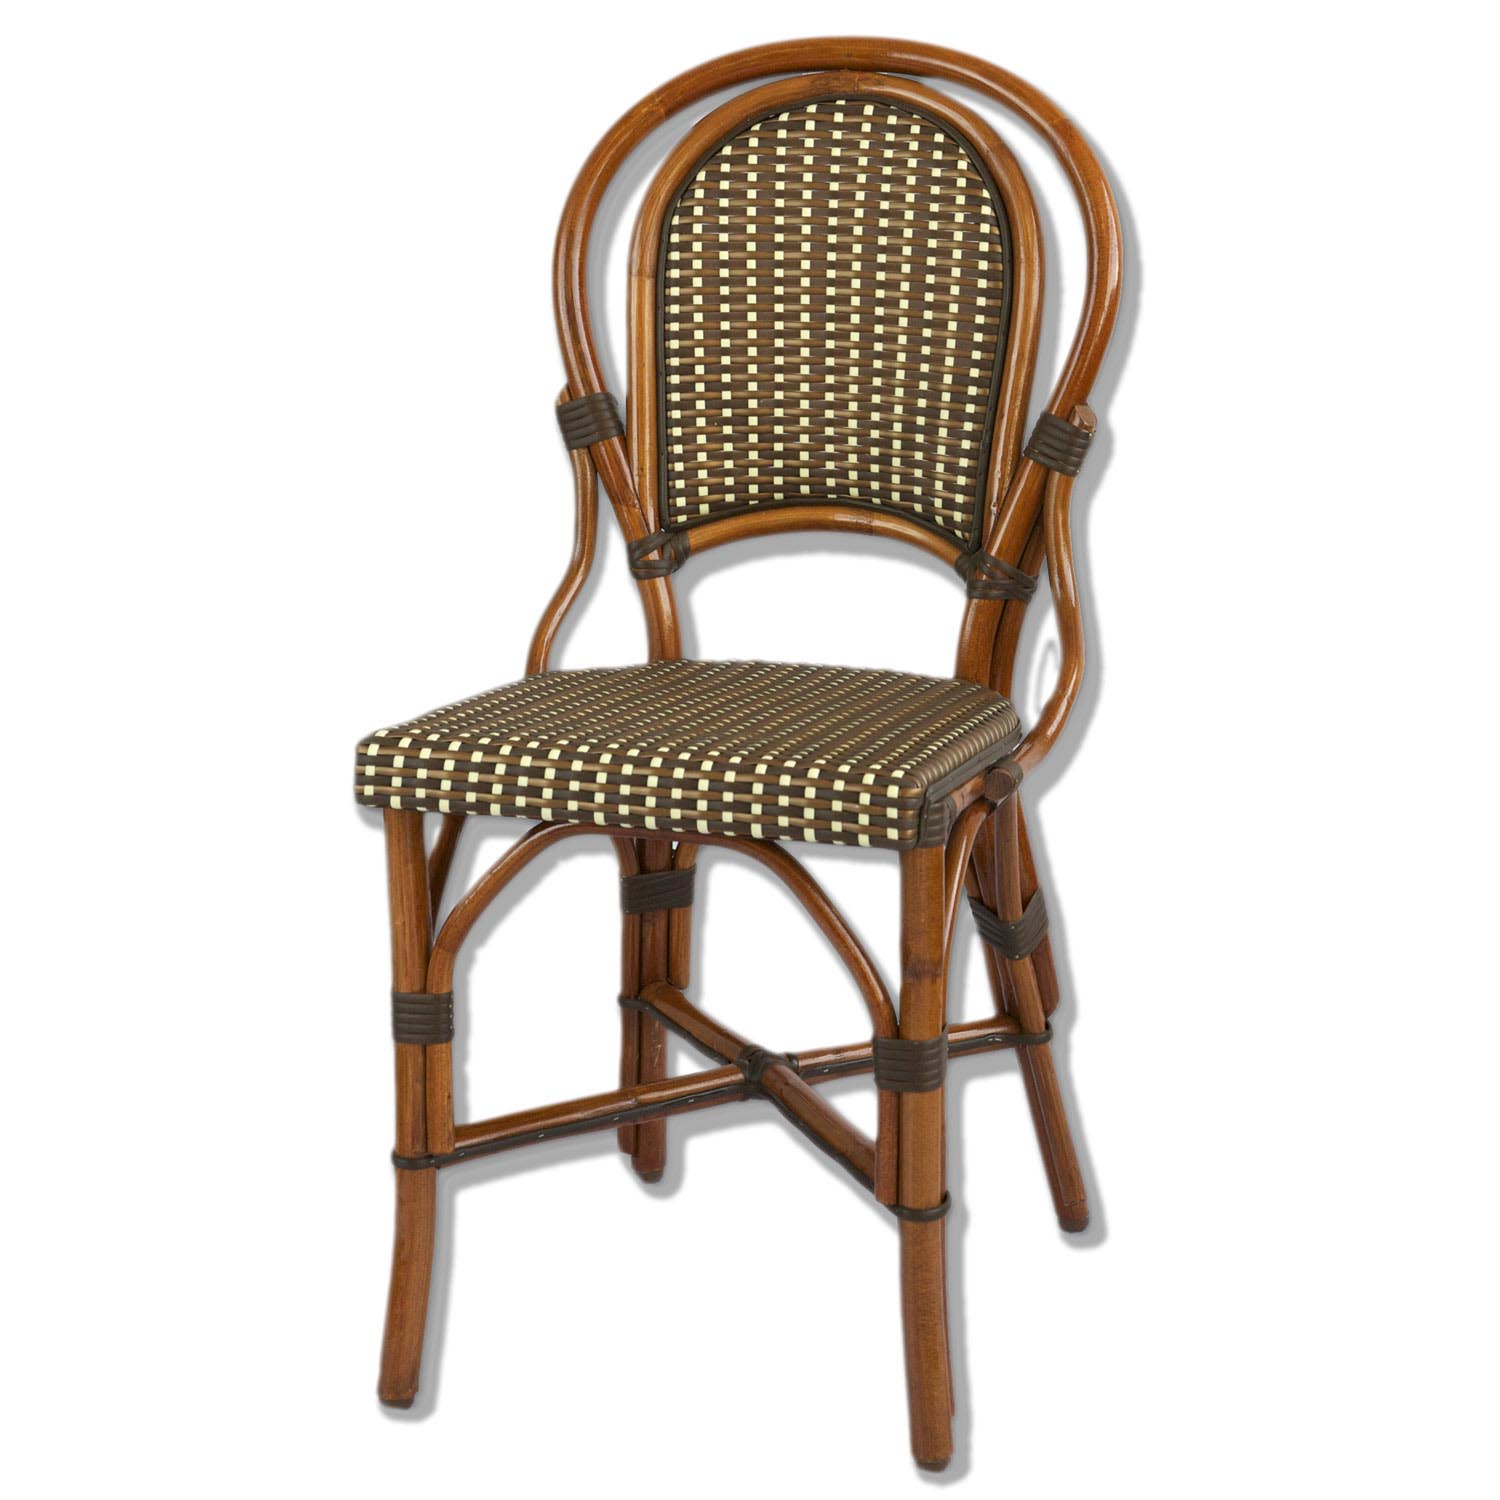 Rattan Bistro Chairs At American Country American Country